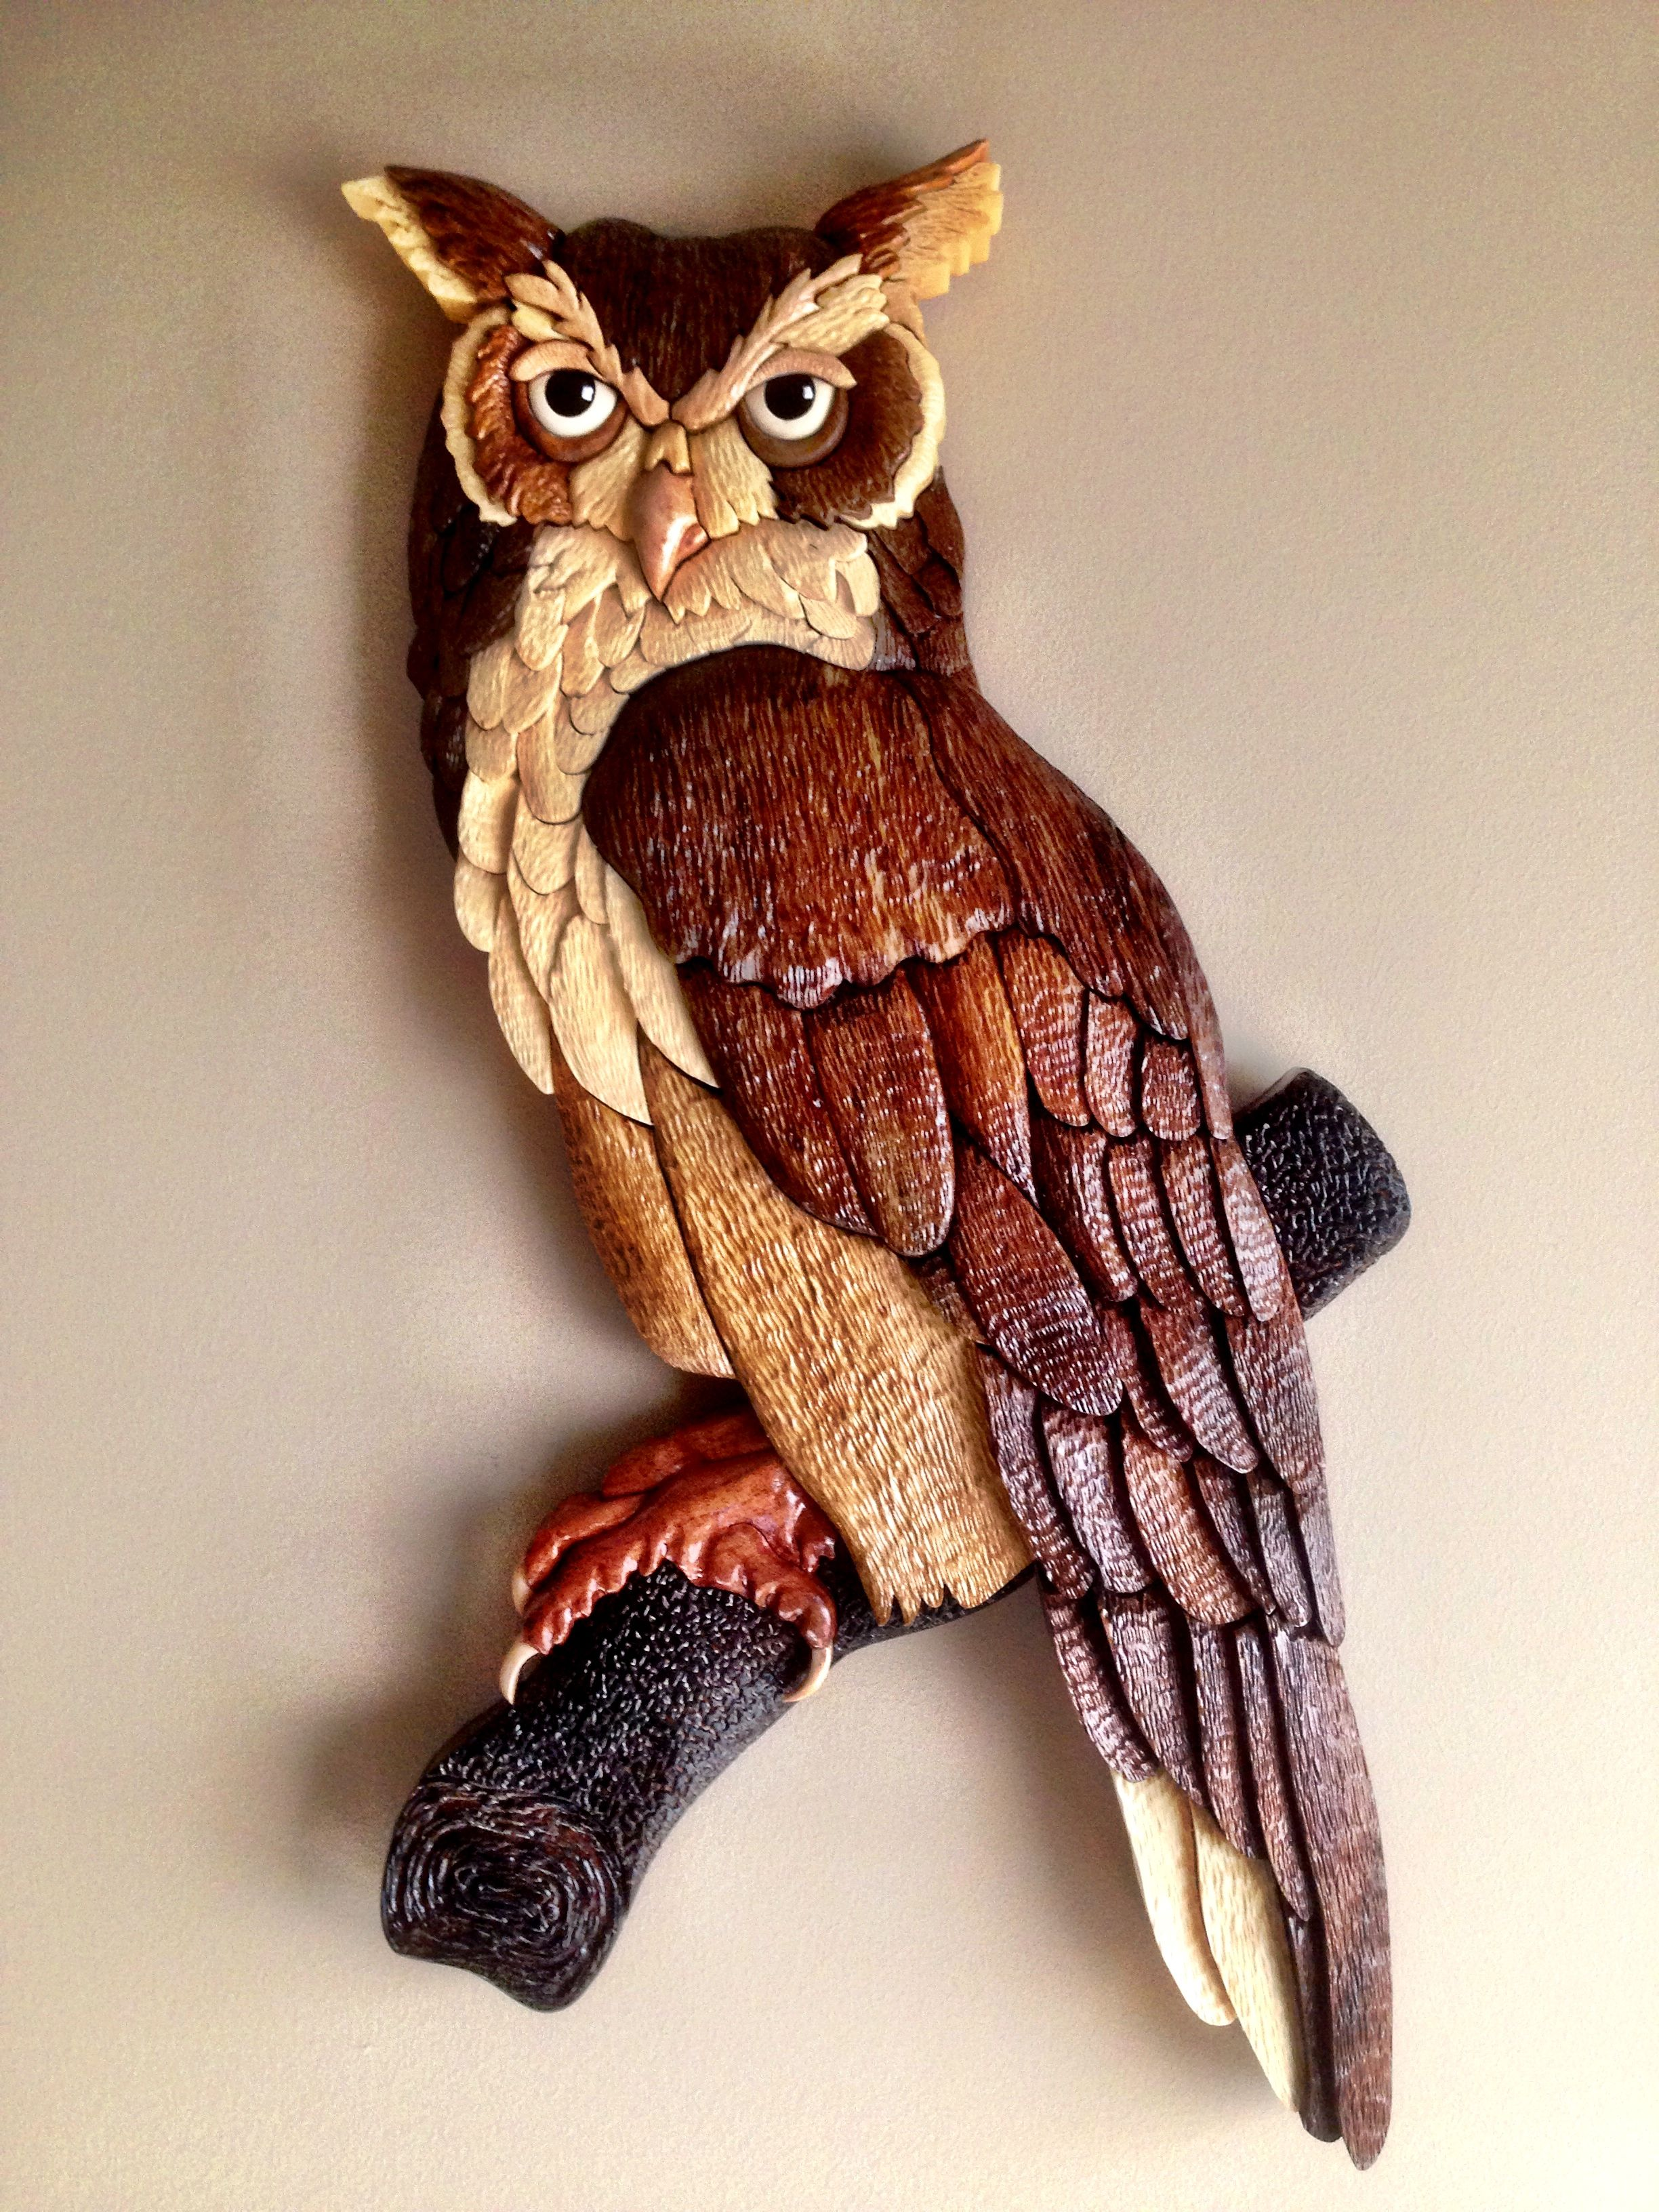 Owl intarsia with a little carving added